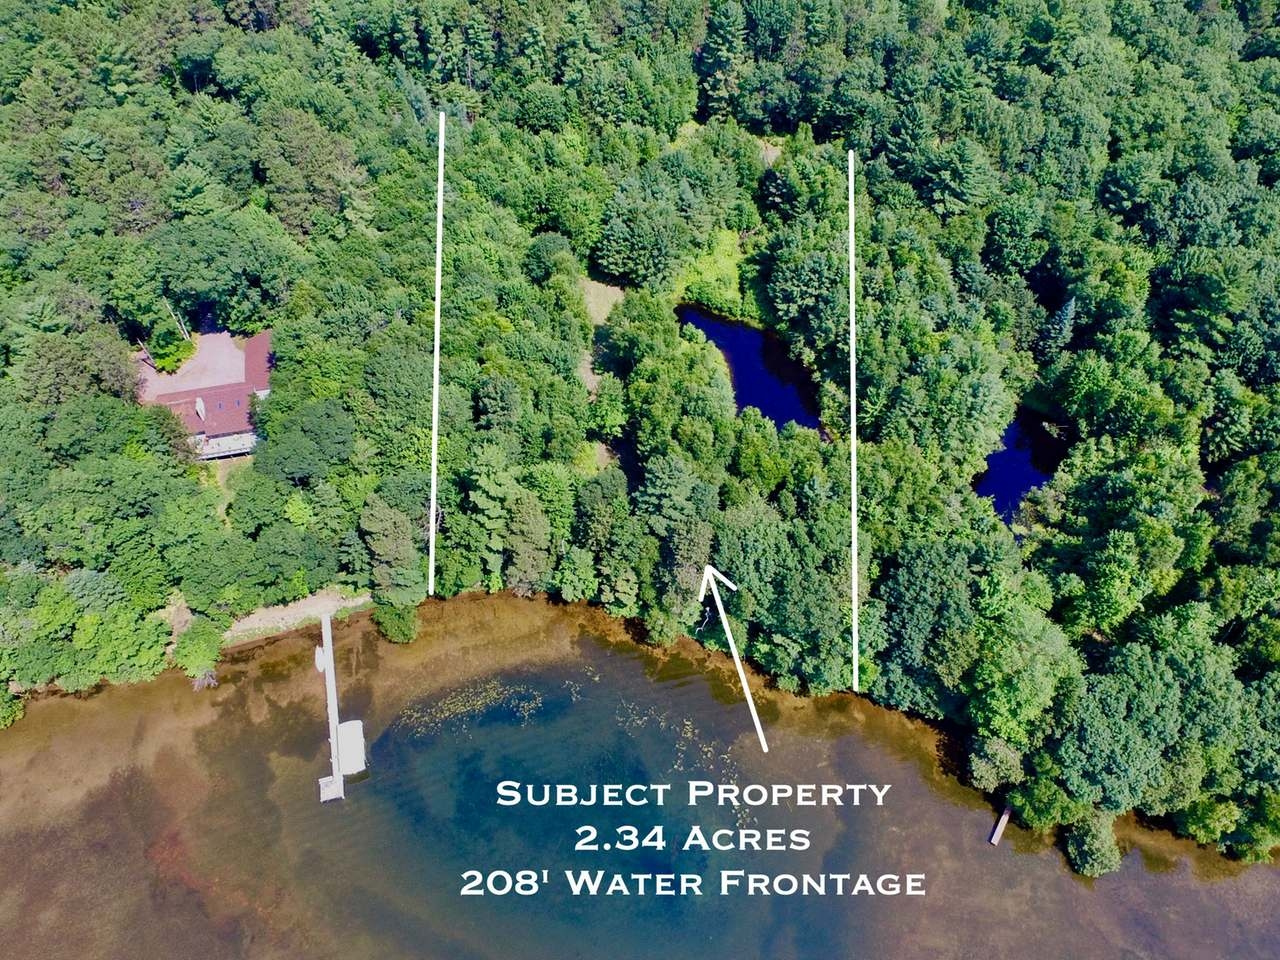 Here's the opportunity you've been waiting for on Trout Lake. This waters-edge lot has toe-wiggling sand frontage and a level approach to the water. It features big water views and a man-made pond that has been wired for illumination and a fountain, which enhances the landscaping possibilities, and there's been a driveway and a site cleared for a spectacular building location. This is the only vacant lot available on Trout Lake!